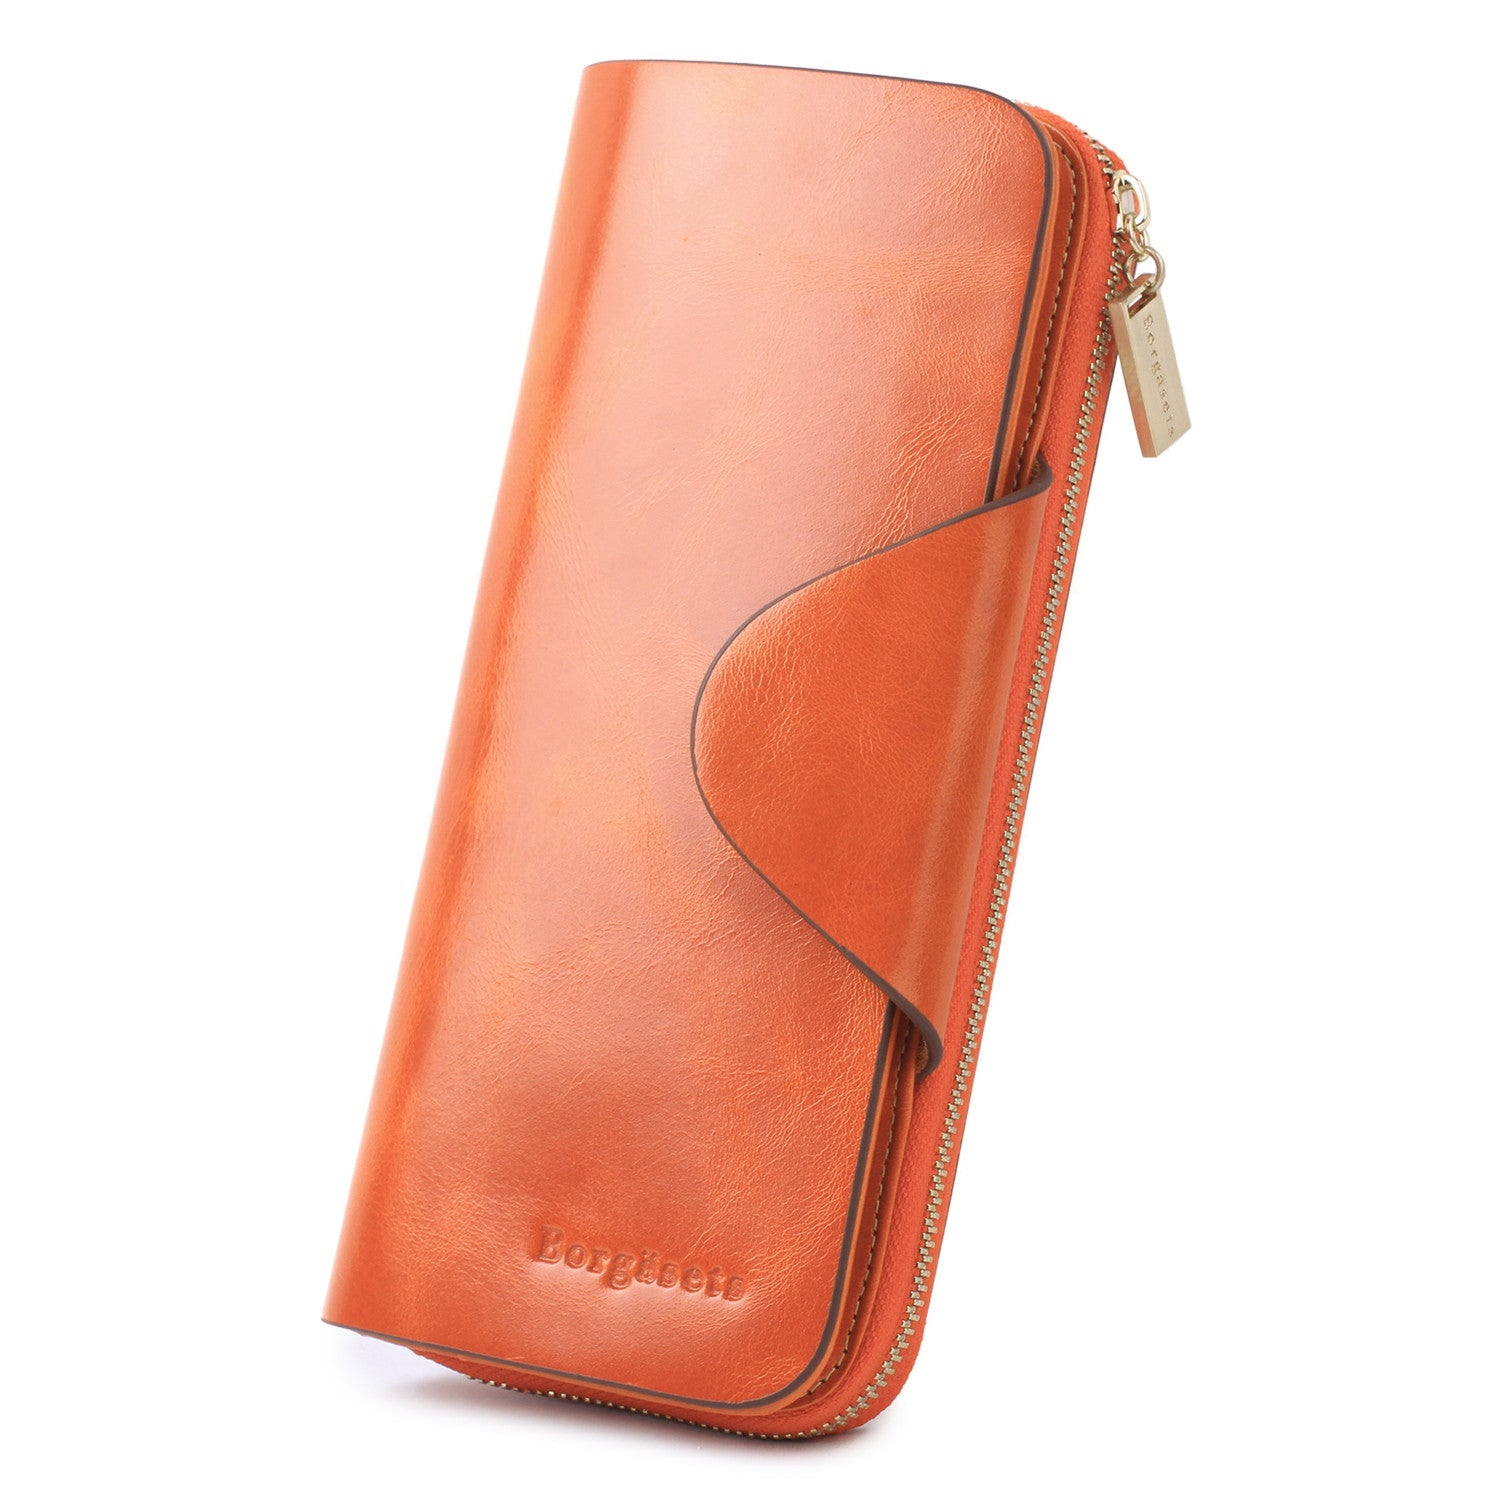 Grande Women's RFID Blocking Wallet Zip Trifold Leather Purse Clutch Orange - Borgasets